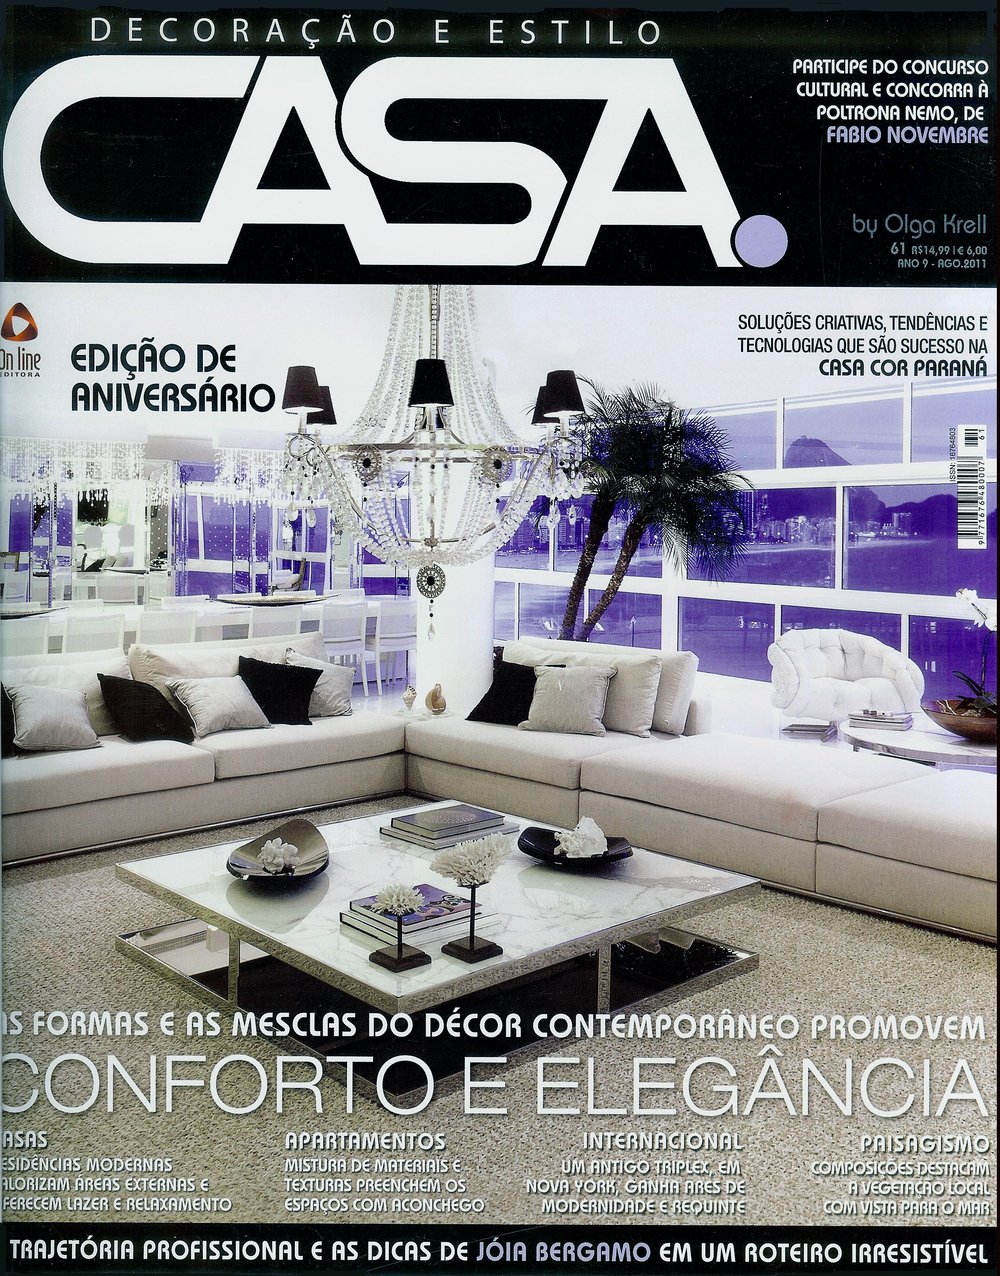 ATI - EB Decoraçåo E Estilo Casa, Brazil August 2011 Cover.jpg